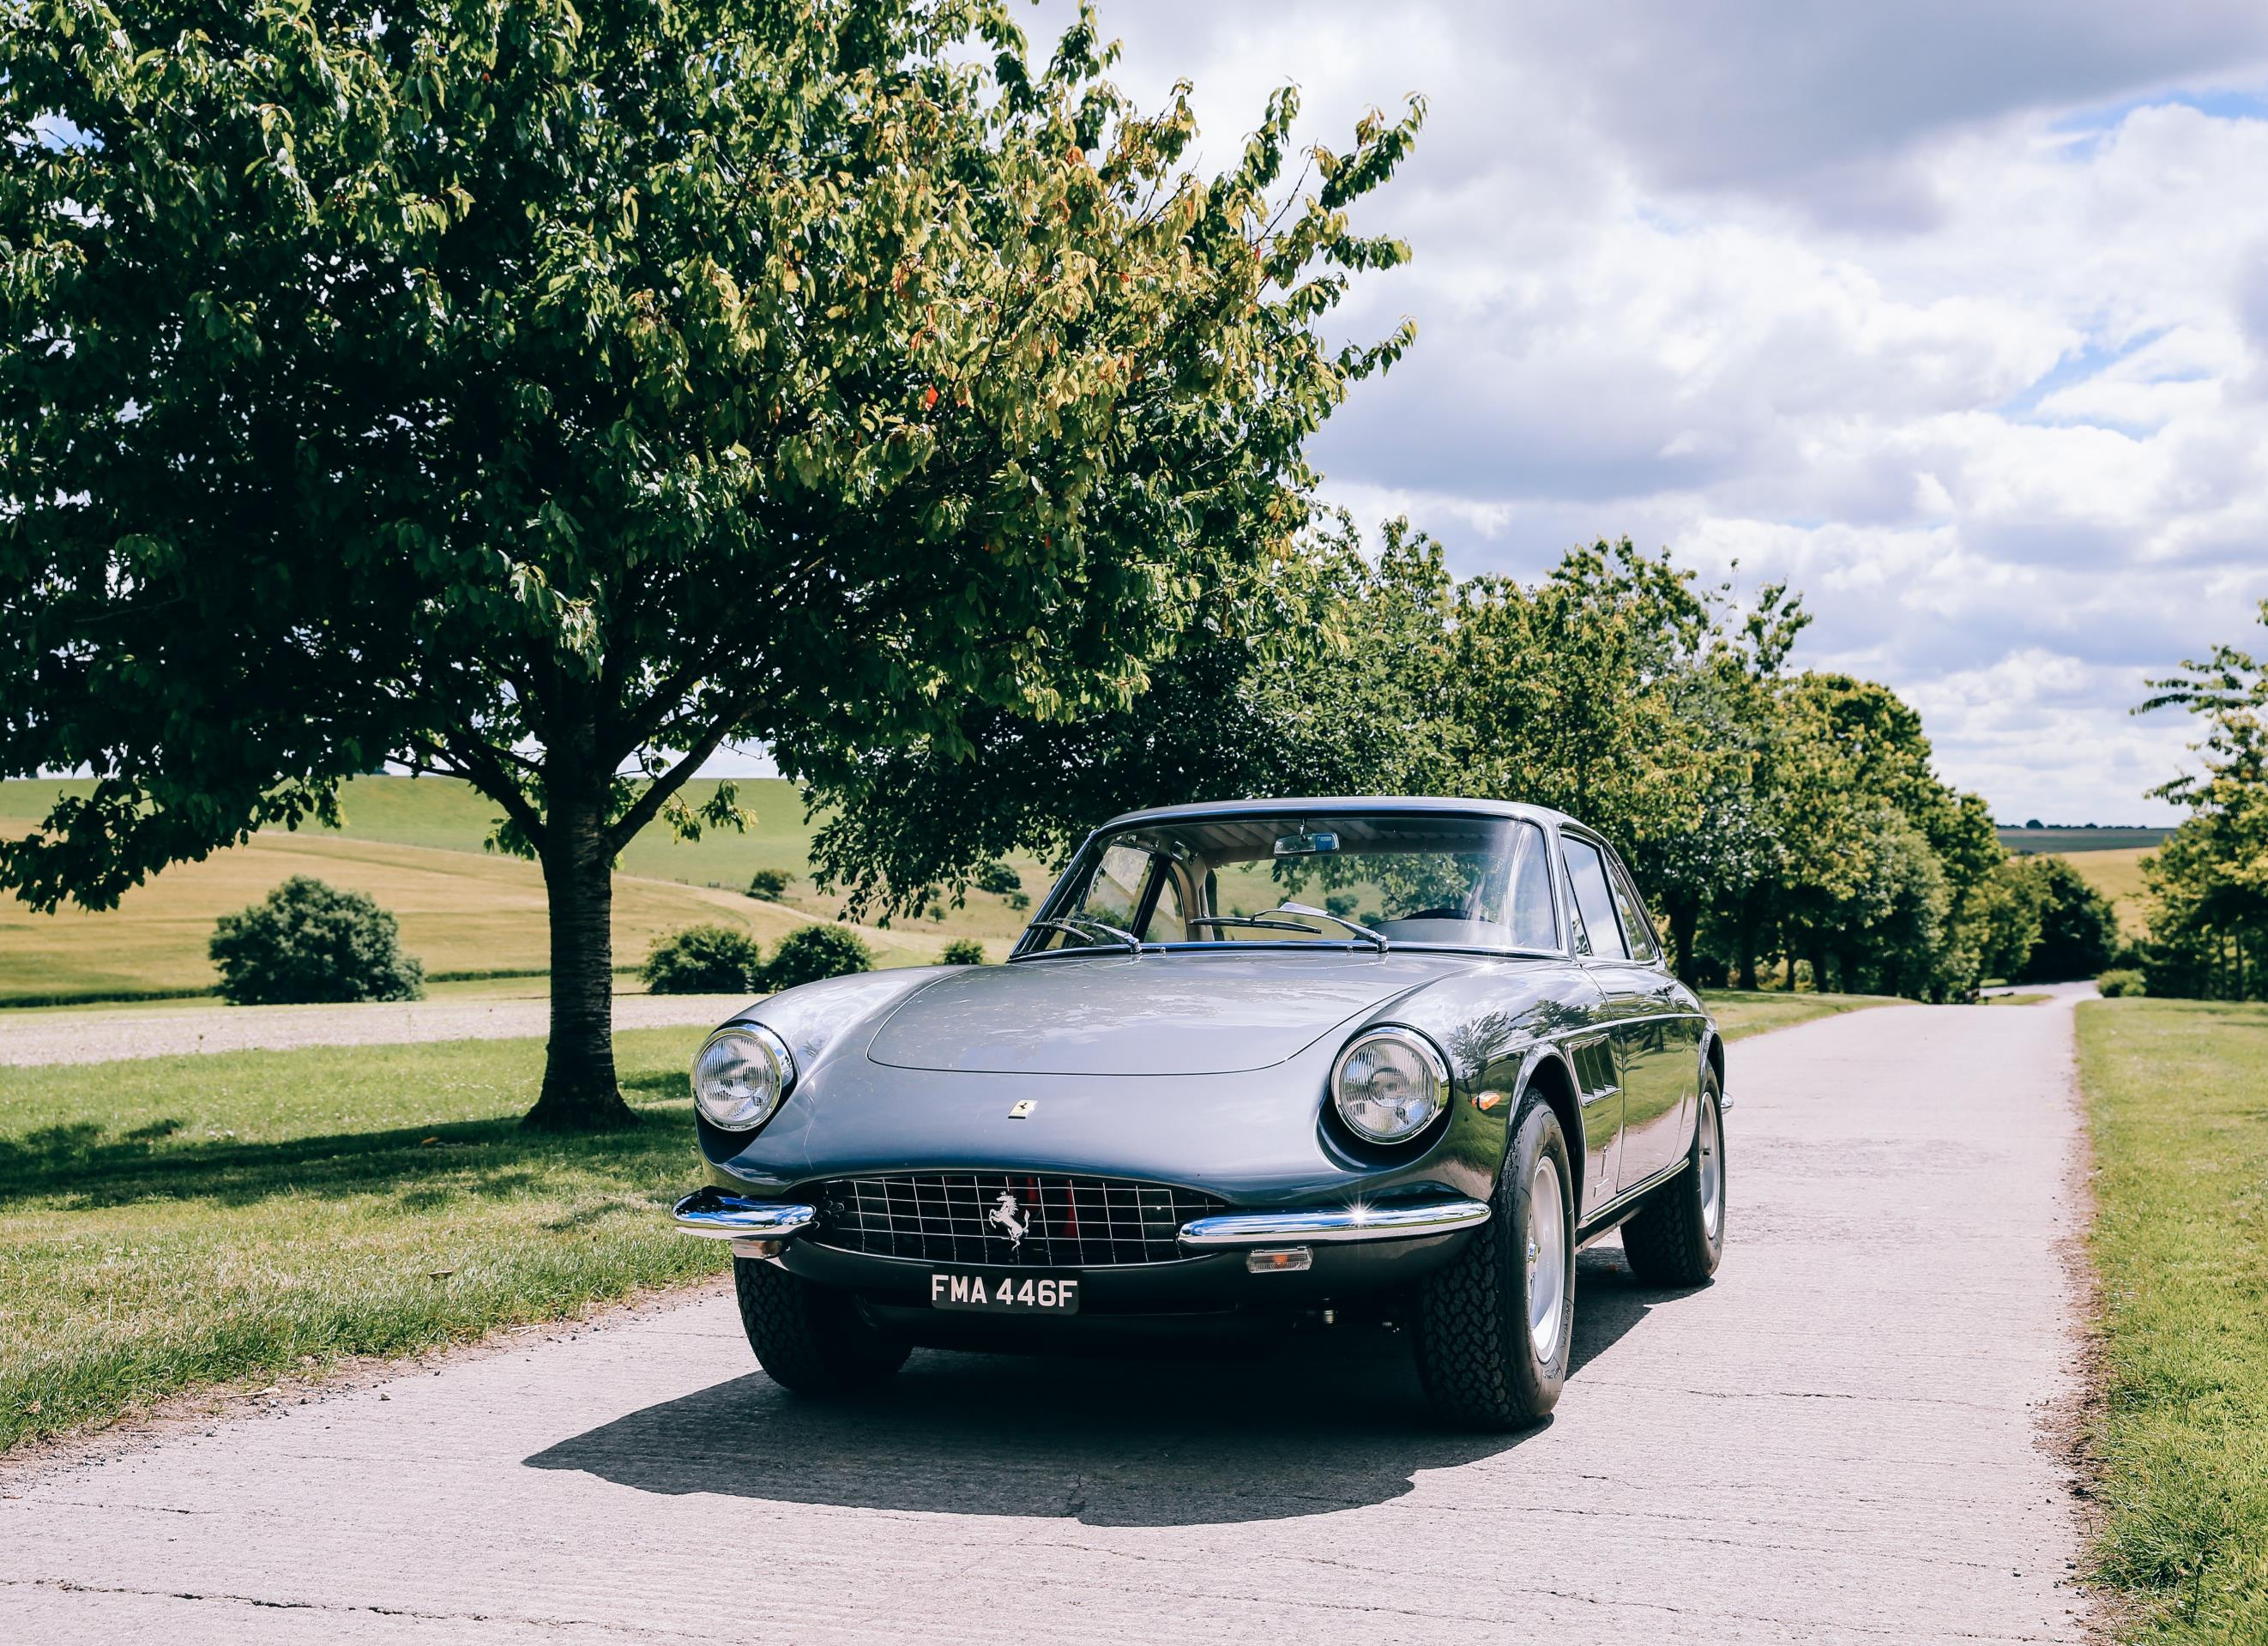 Salon Prive is a high-end motoring event